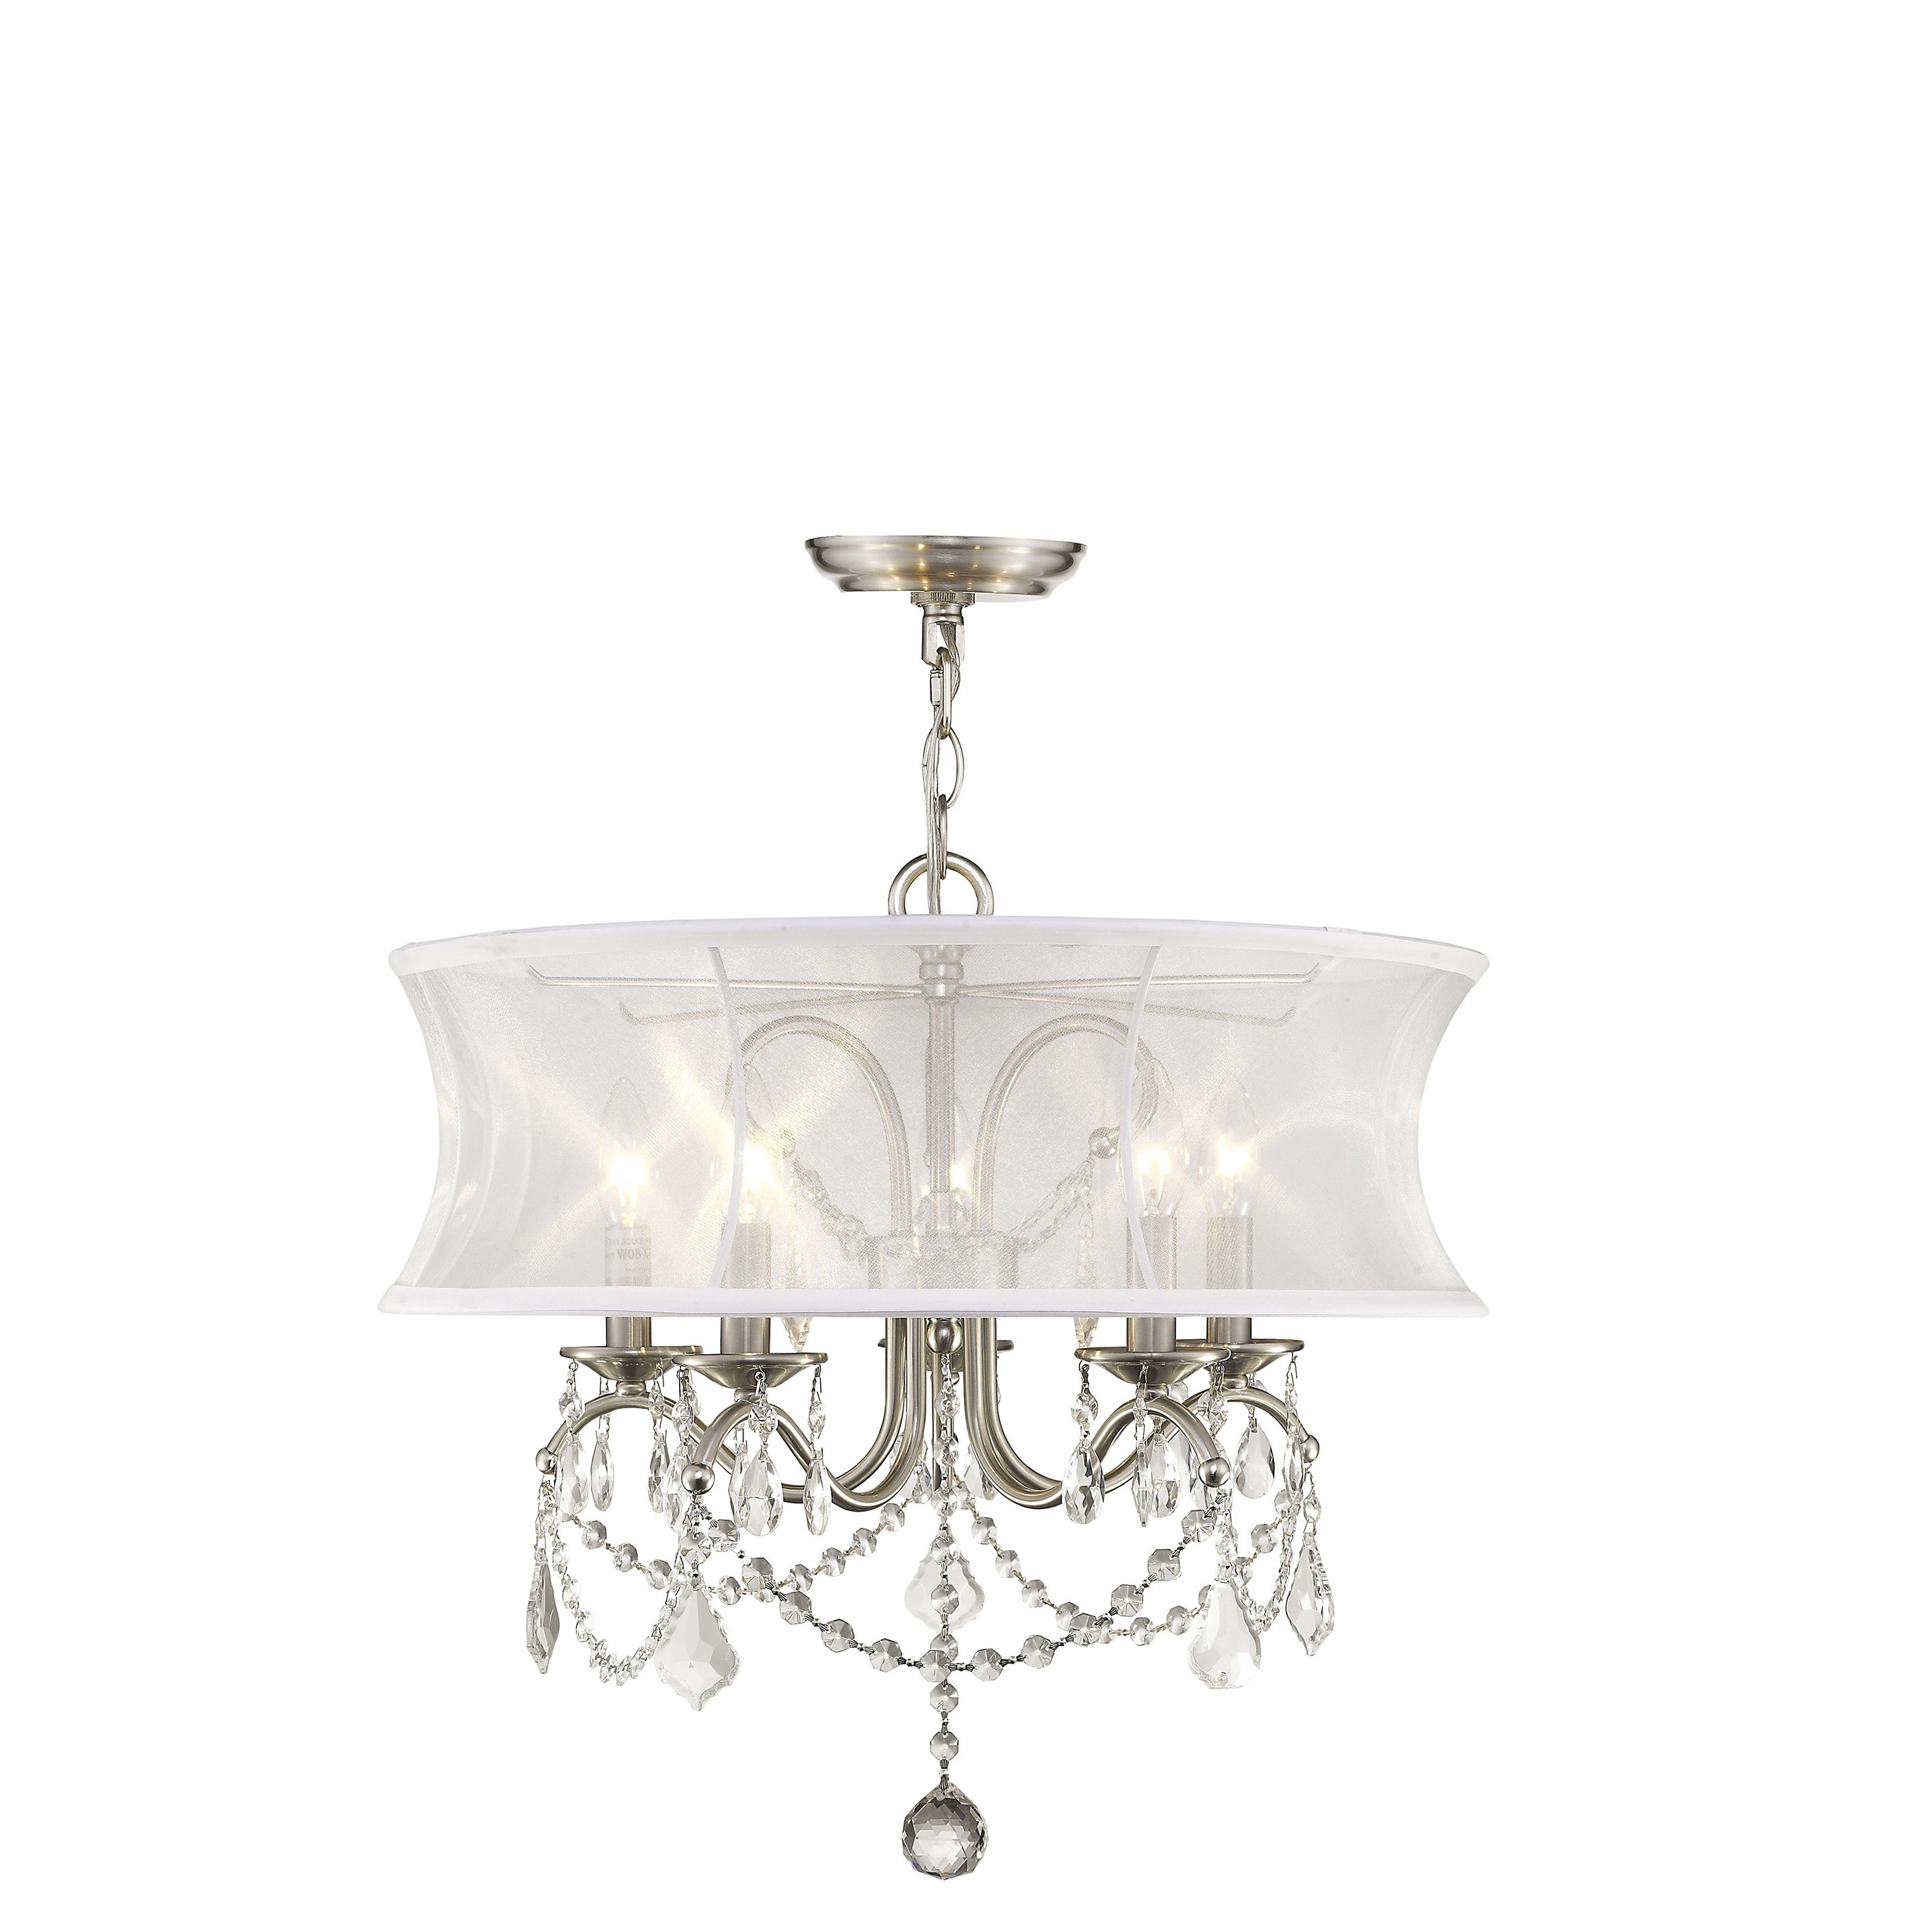 Abel 5 Light Drum Chandeliers With Well Liked Willa Arlo Interiors Aubrianne Drum Chandelier (View 18 of 20)